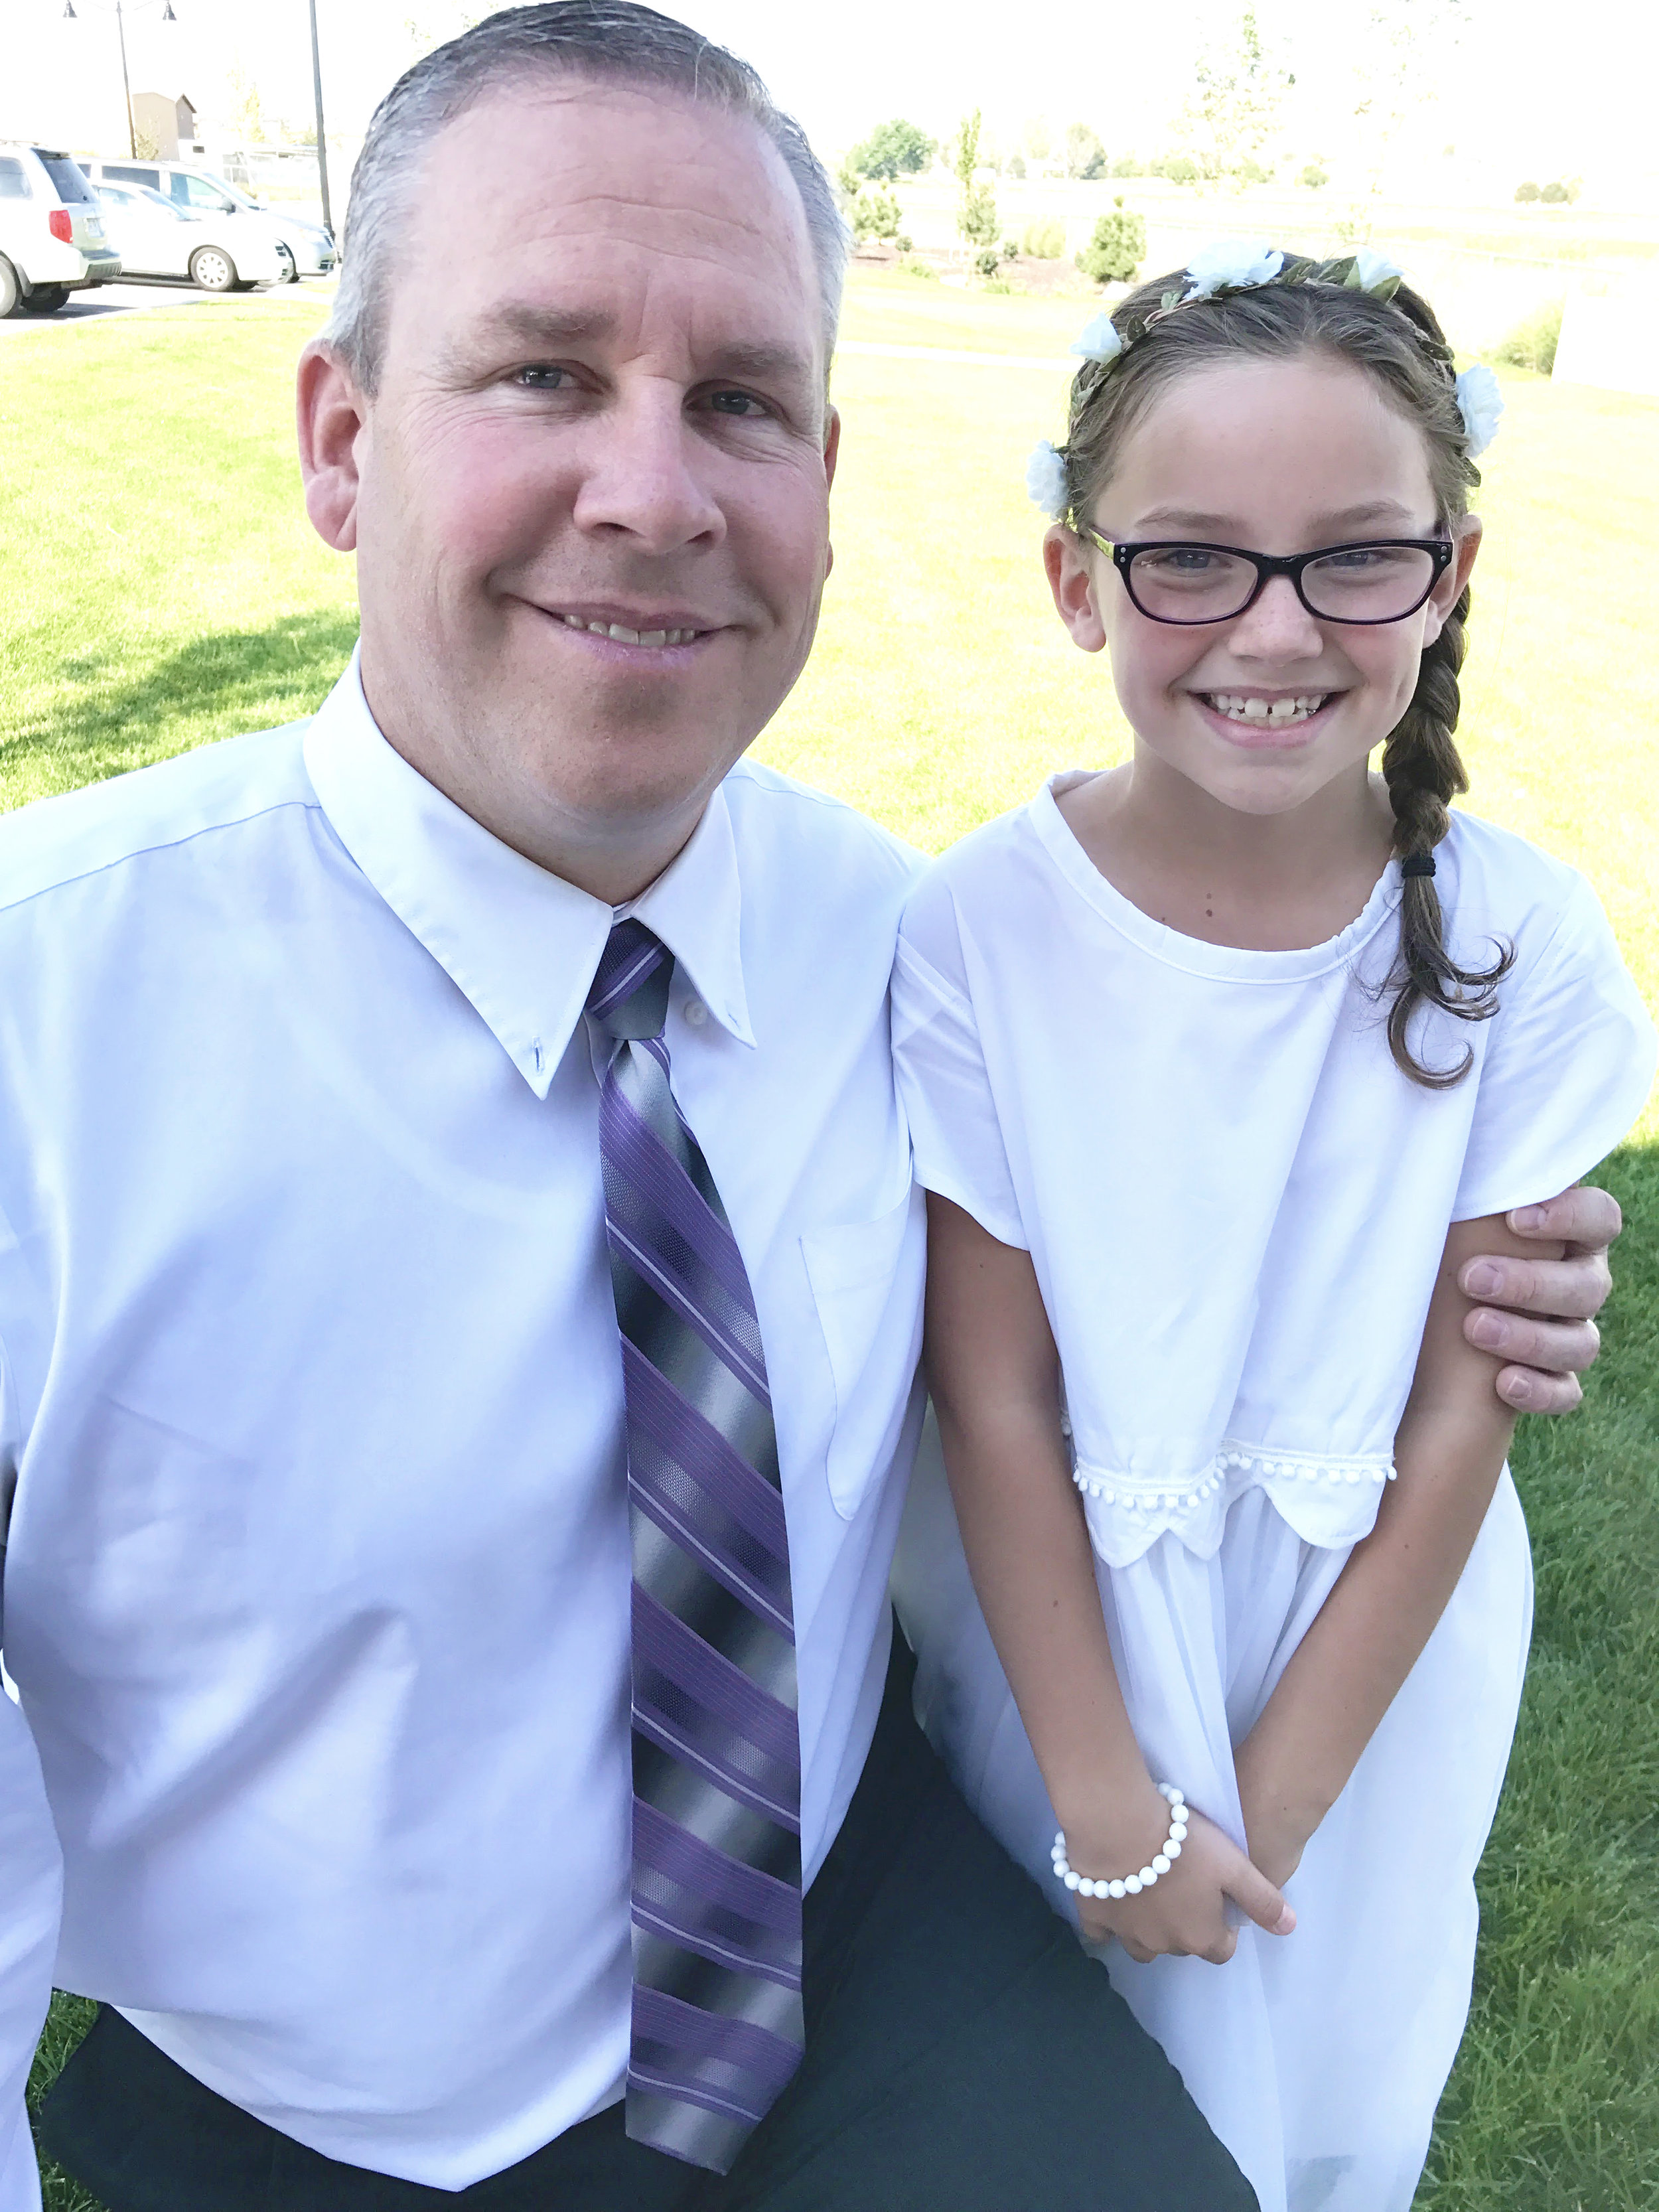 Daughter wearing her dad's dress shirt Refashioned into a baptism dress.